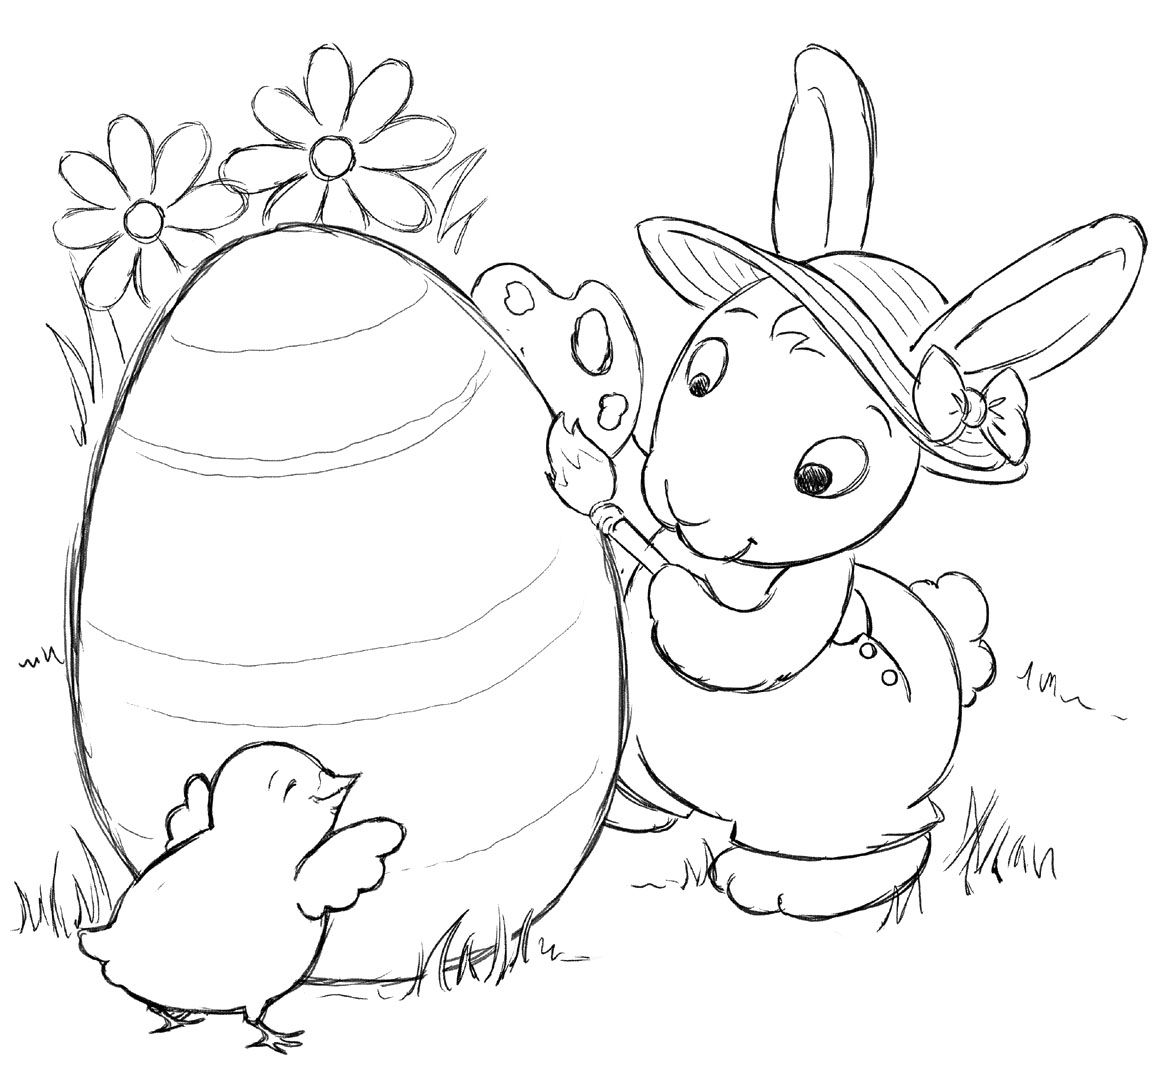 Bunny Cute Big Easter Egg Decorating Coloring Pages Kids | Coloring ...